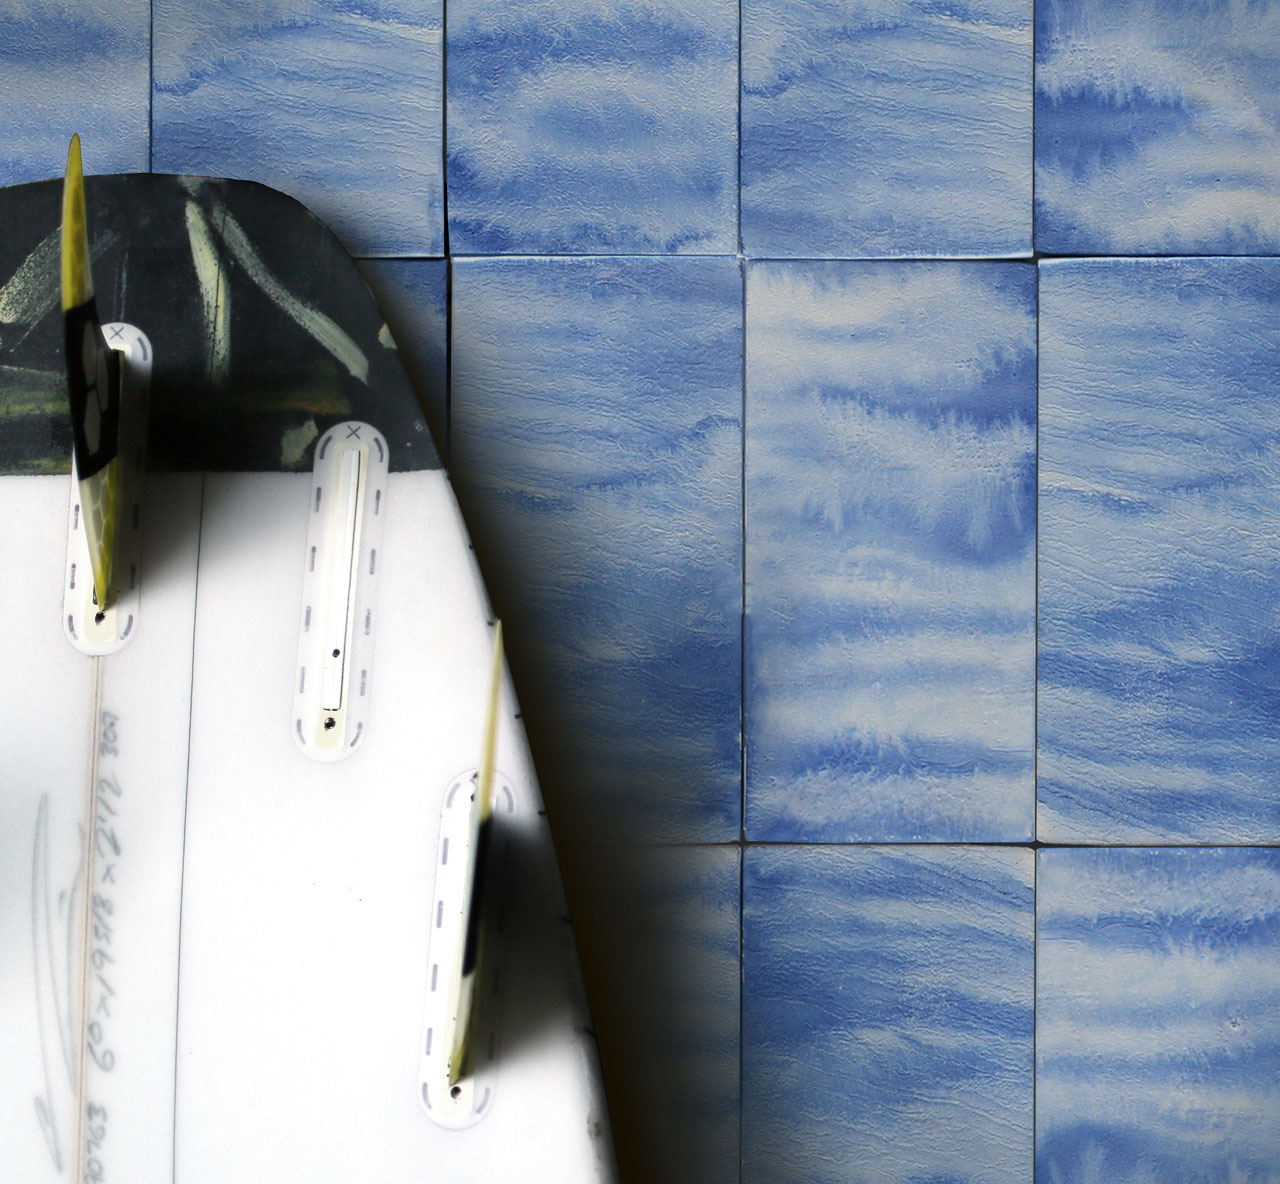 The Watermark Collection of Handcrafted Tiles Introduces Tides